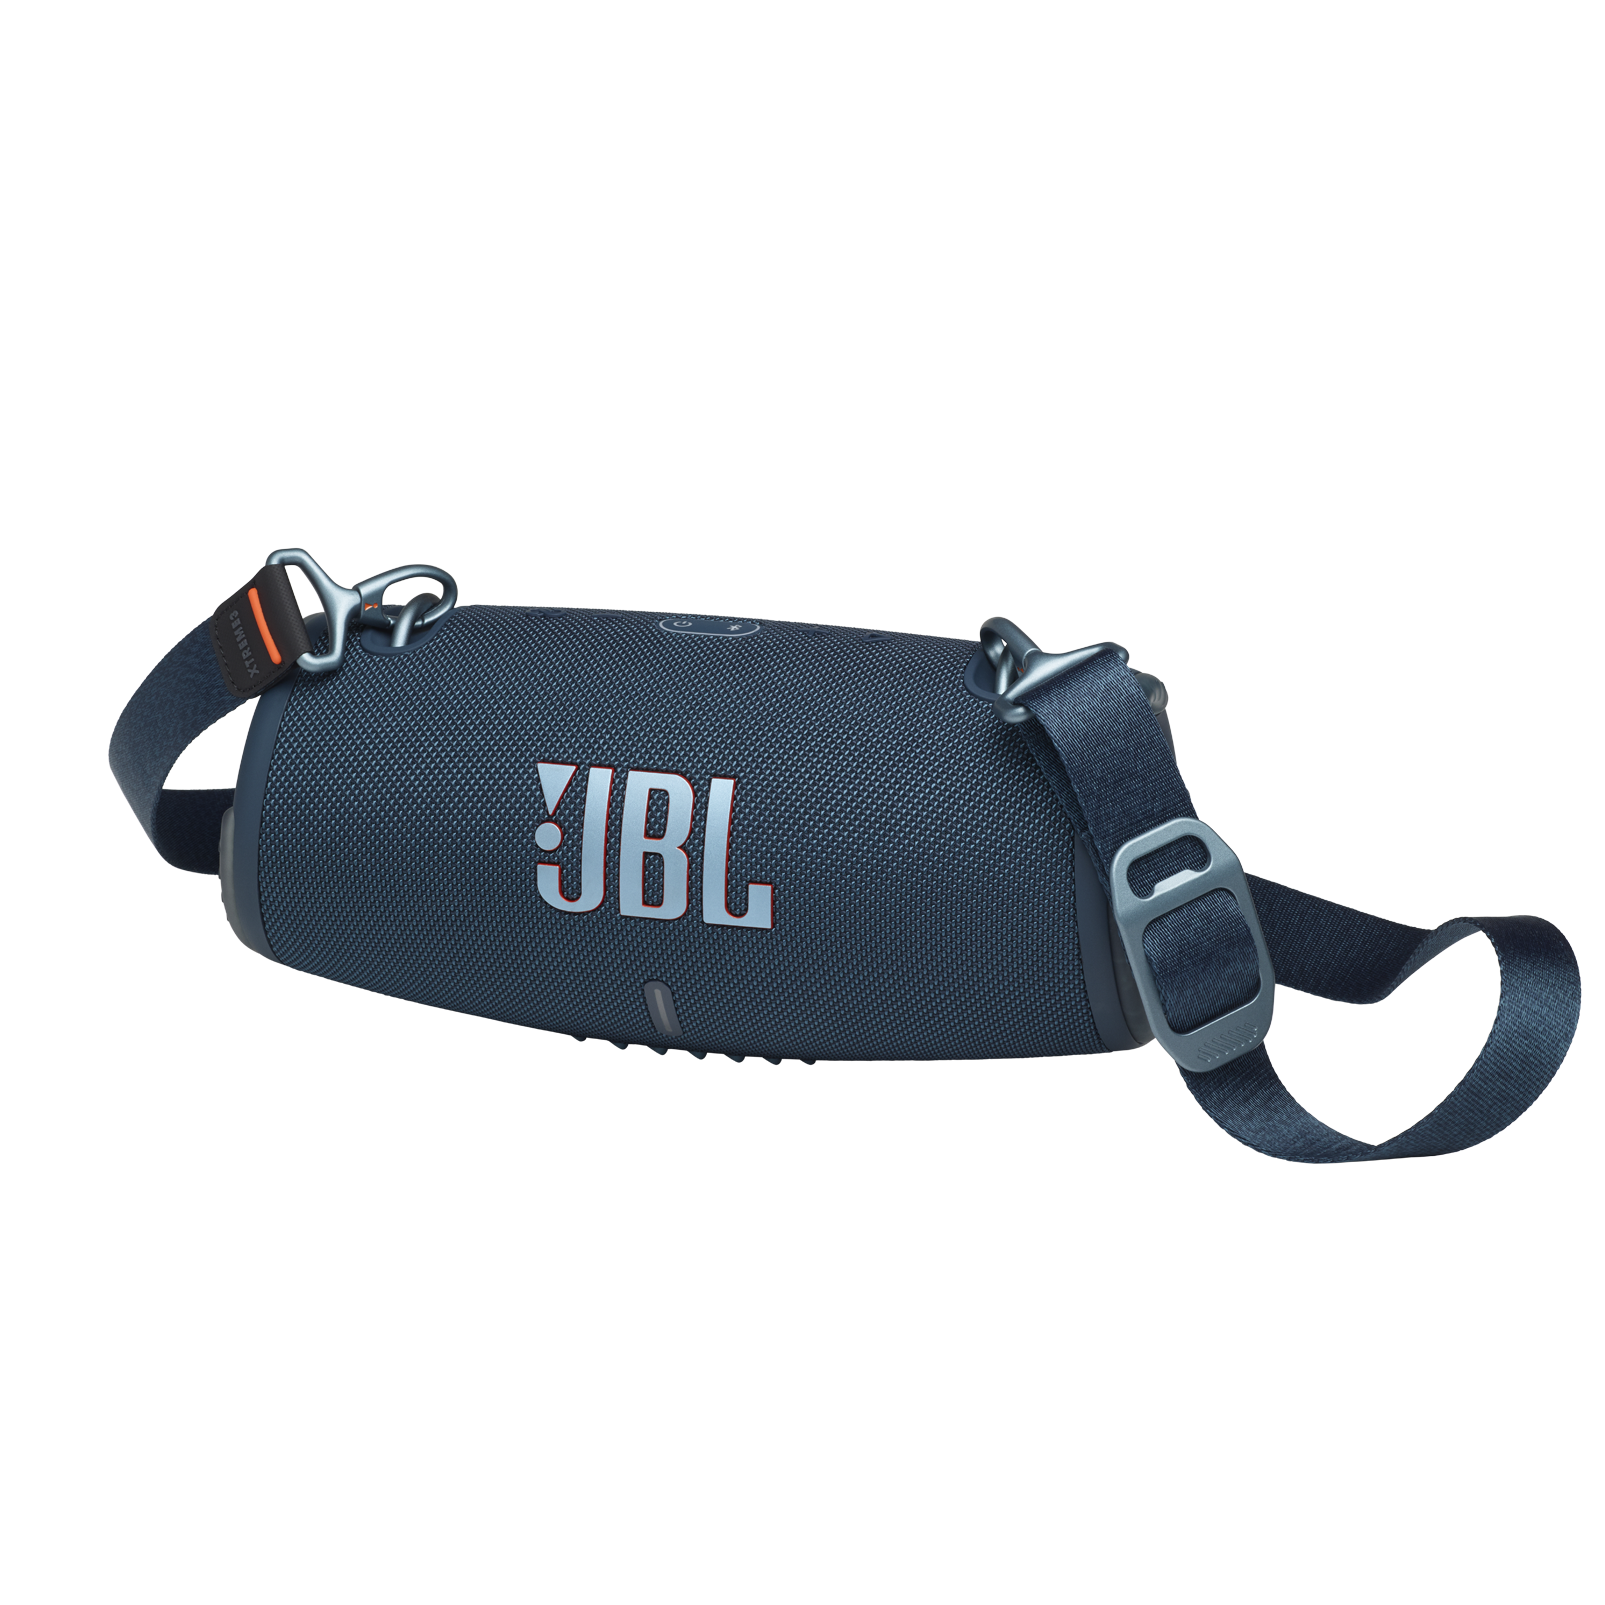 JBL Xtreme 3 - Blue - Portable waterproof speaker - Detailshot 3